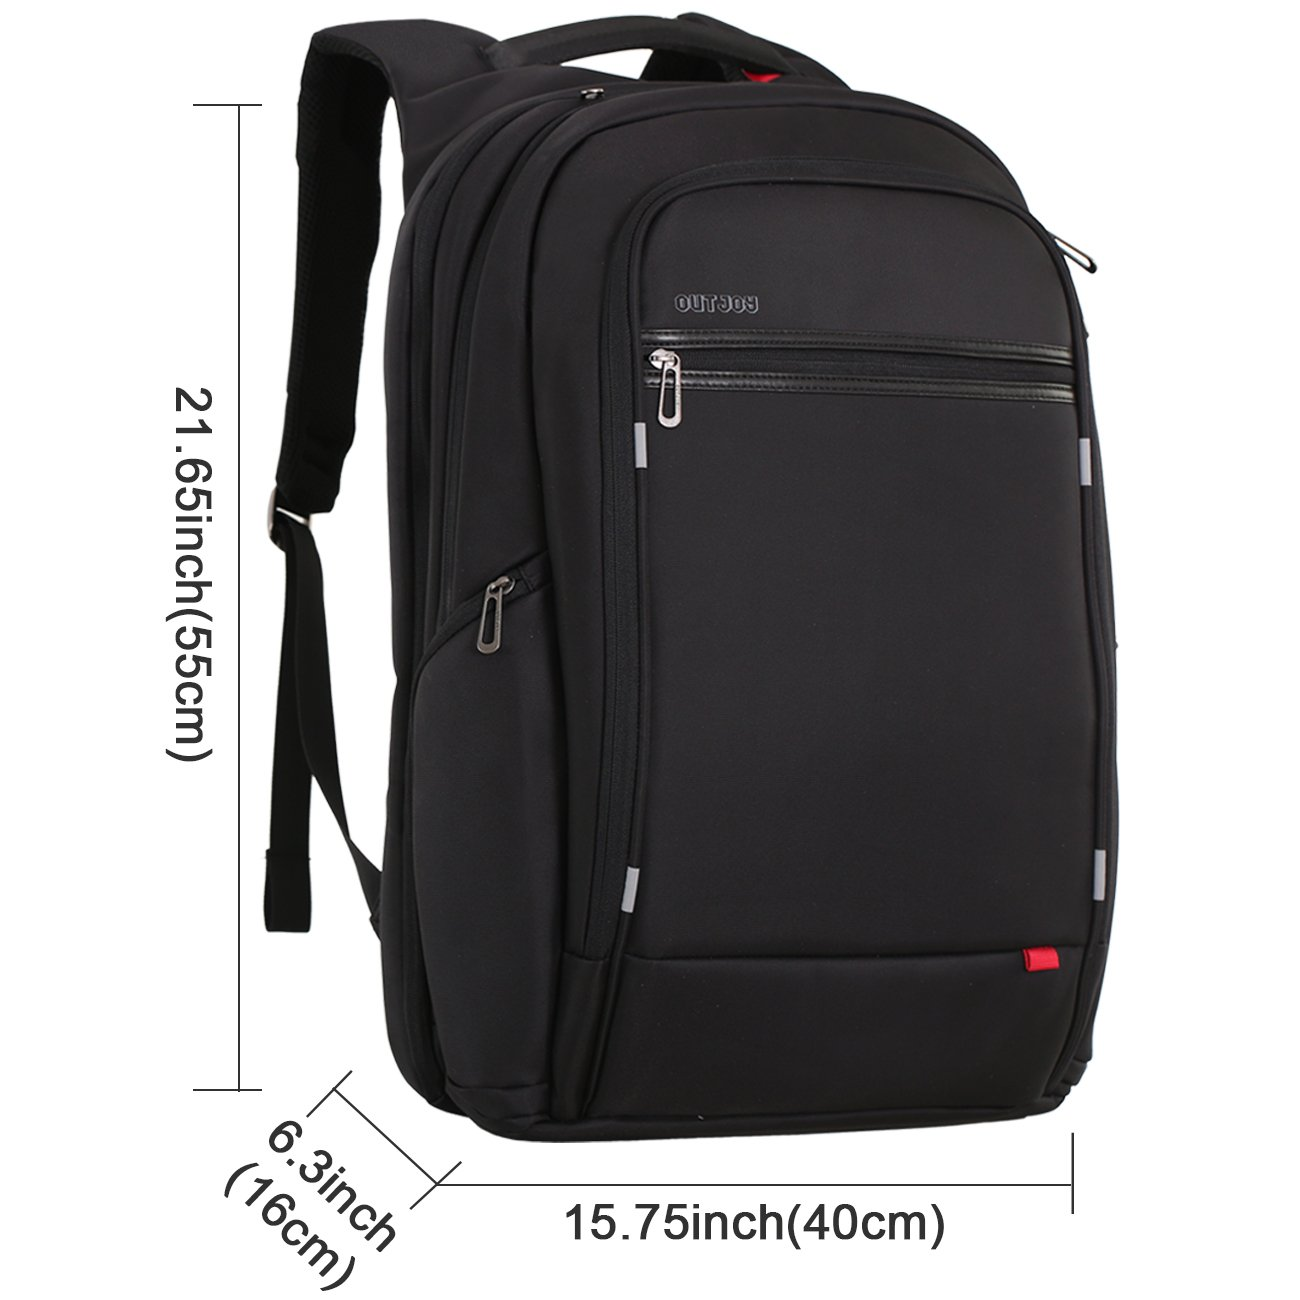 18 inch large Laptop Backpack for Men,Water Resistant Polyester Backpack with USB Charging Port,Large Bookbag College Backpack Travel bag Black Business Backpack fit 15.6 17.3 laptops by Outjoy by OUTJOY (Image #6)